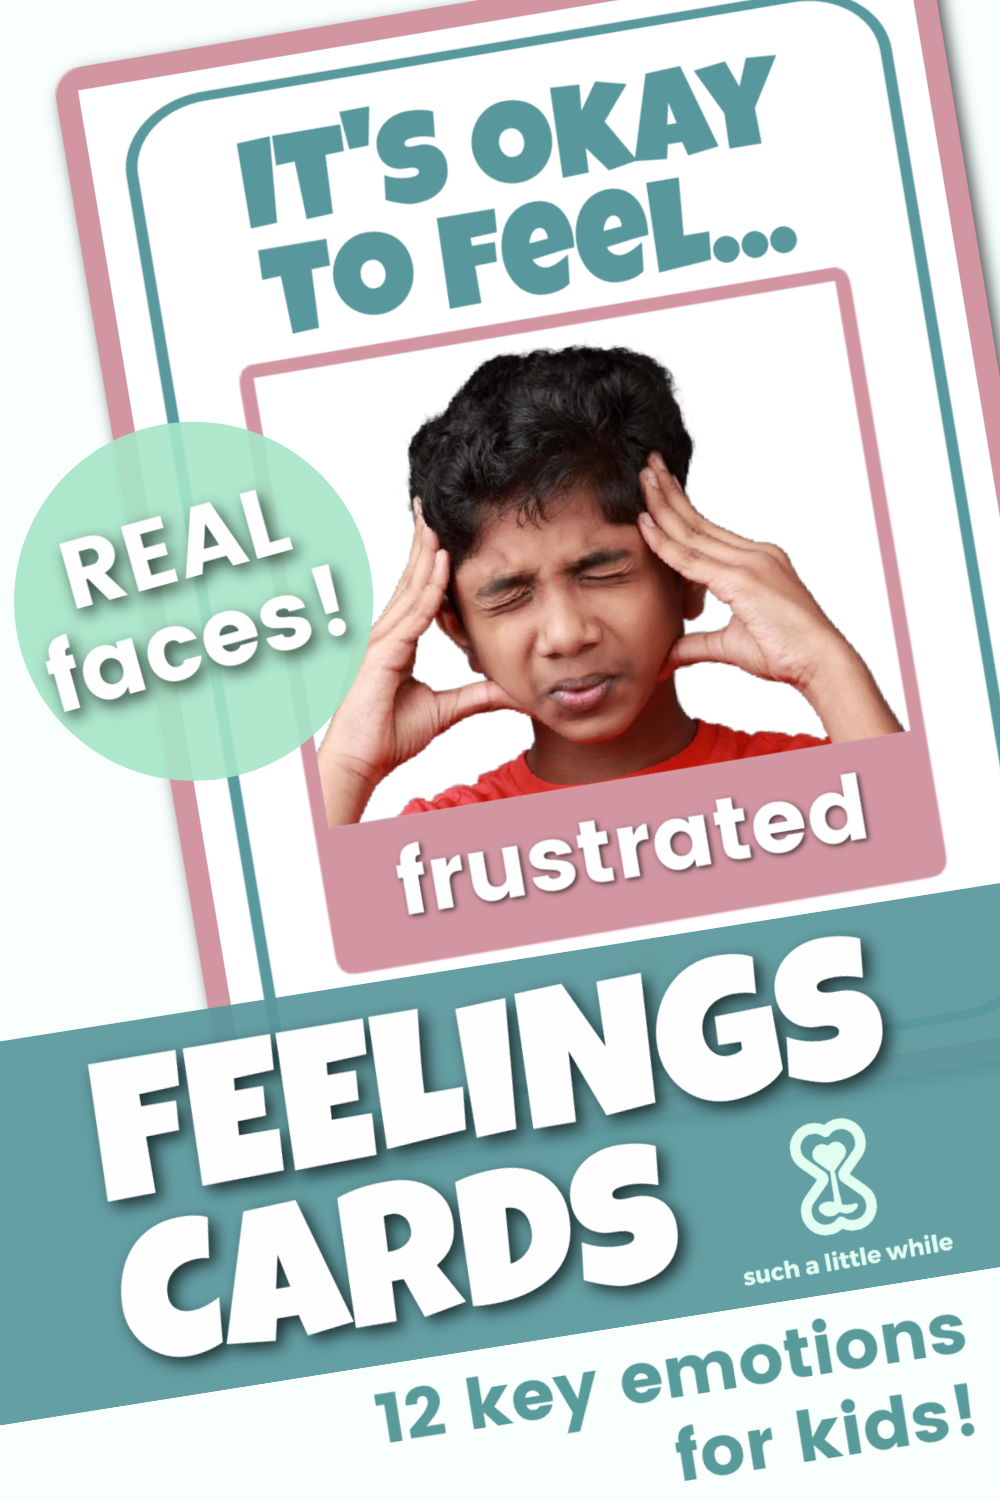 Printable Feelings Cards for Preschoolers! By Such a Little While